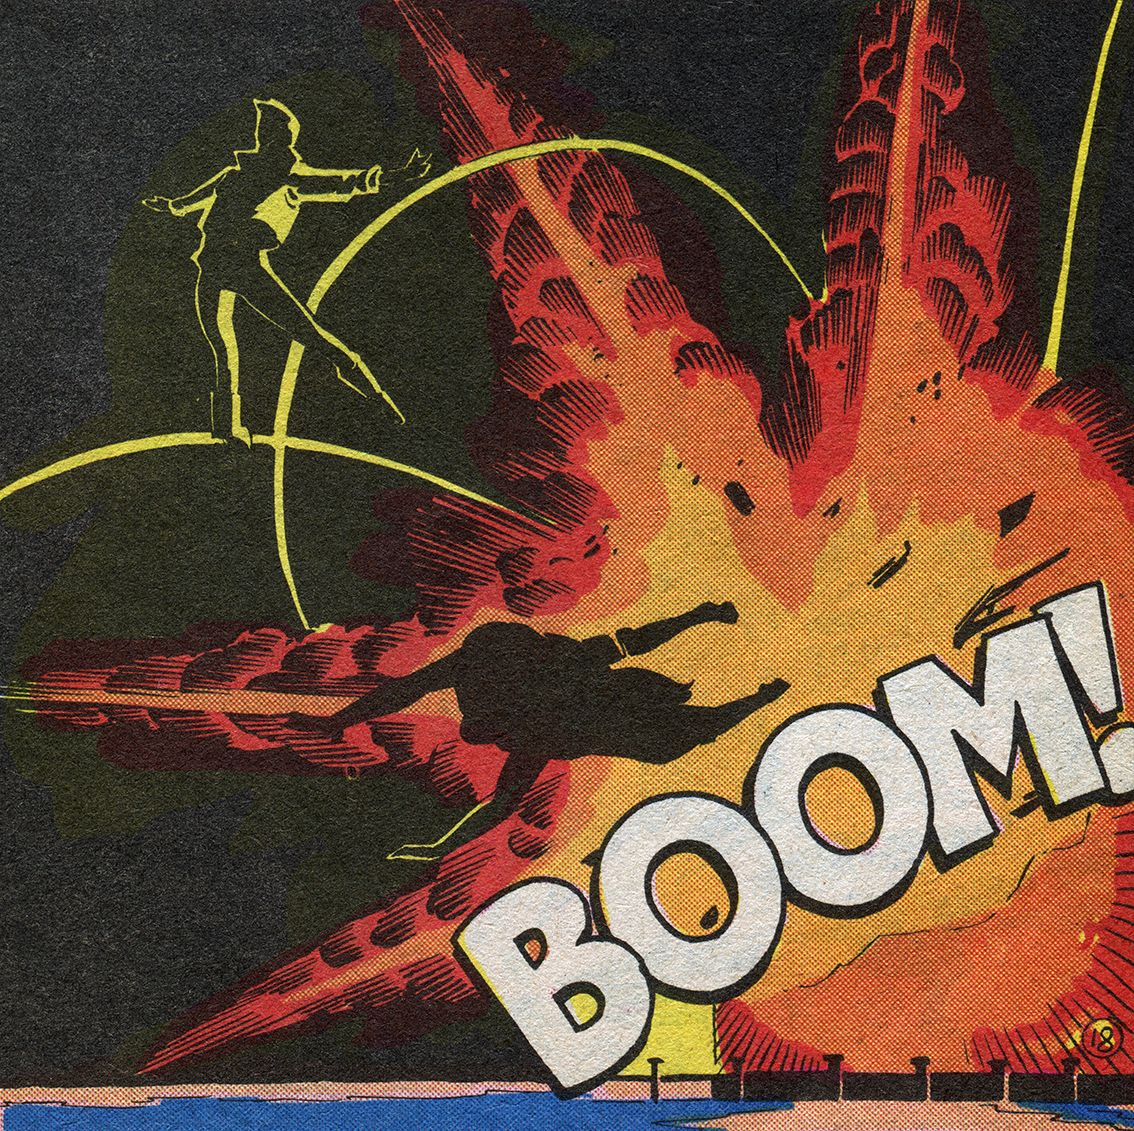 Boom - Art by Paul Smith (1983)